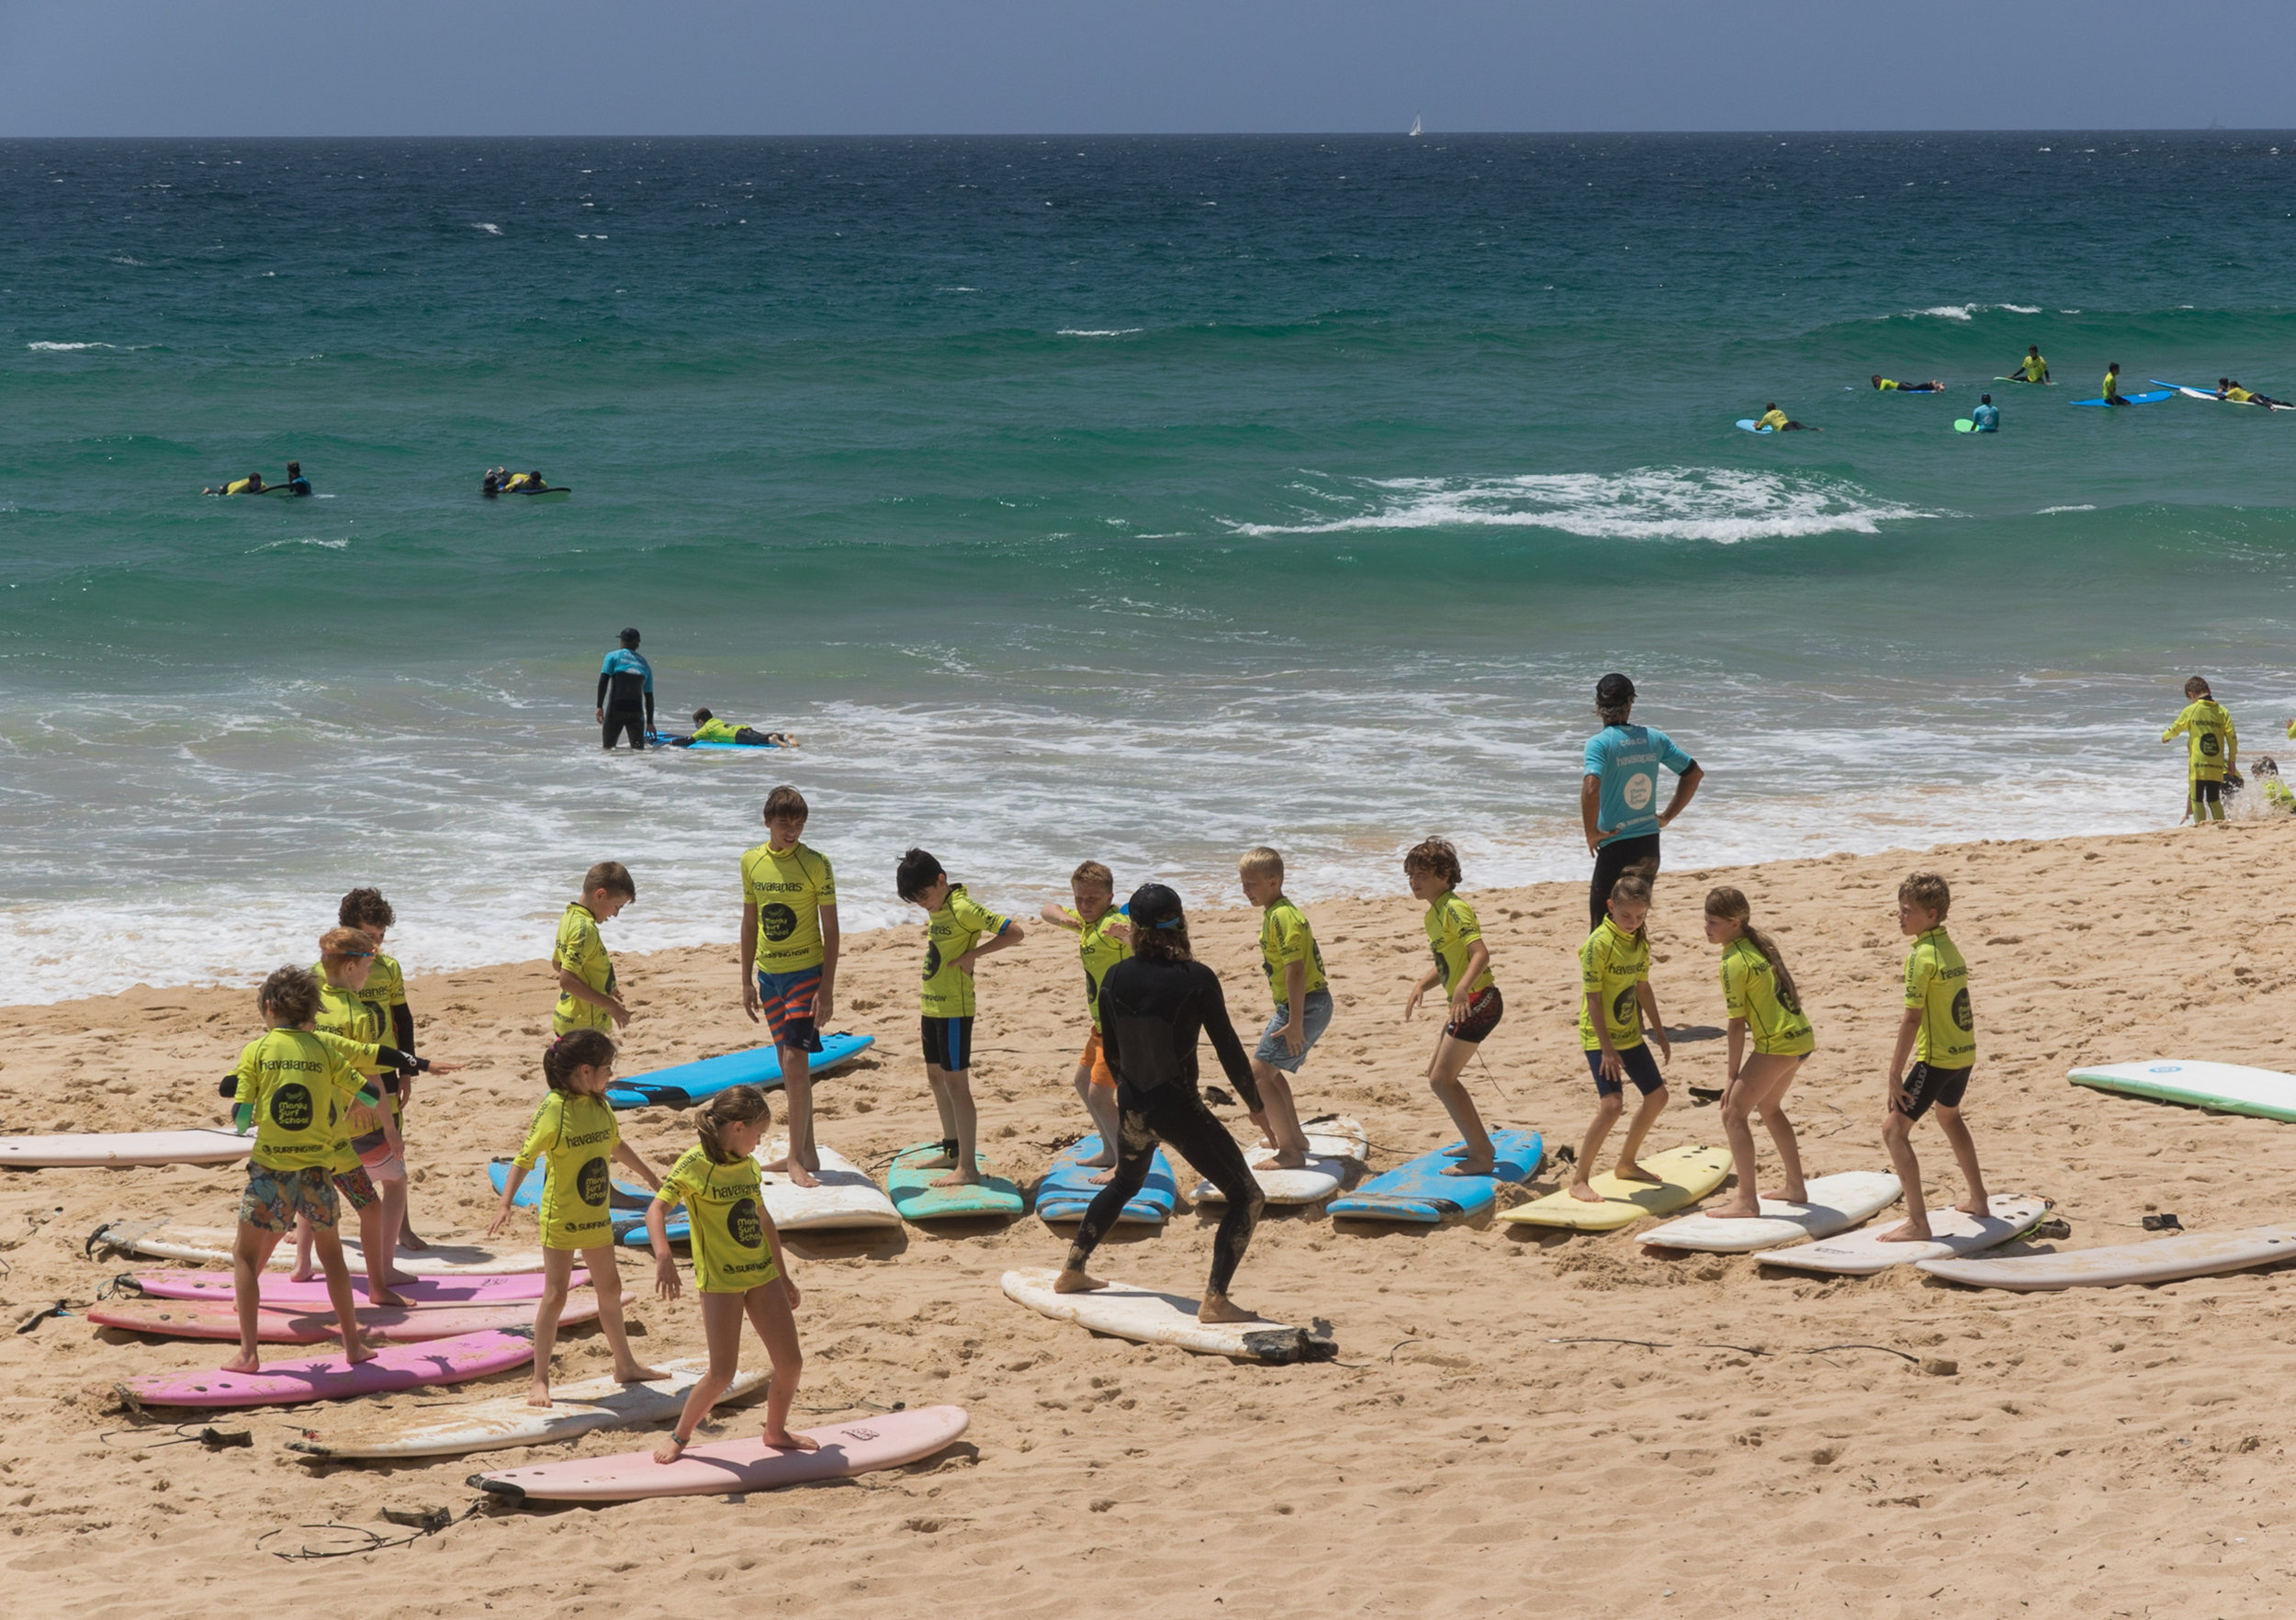 new surfers learning the surf stance on sand